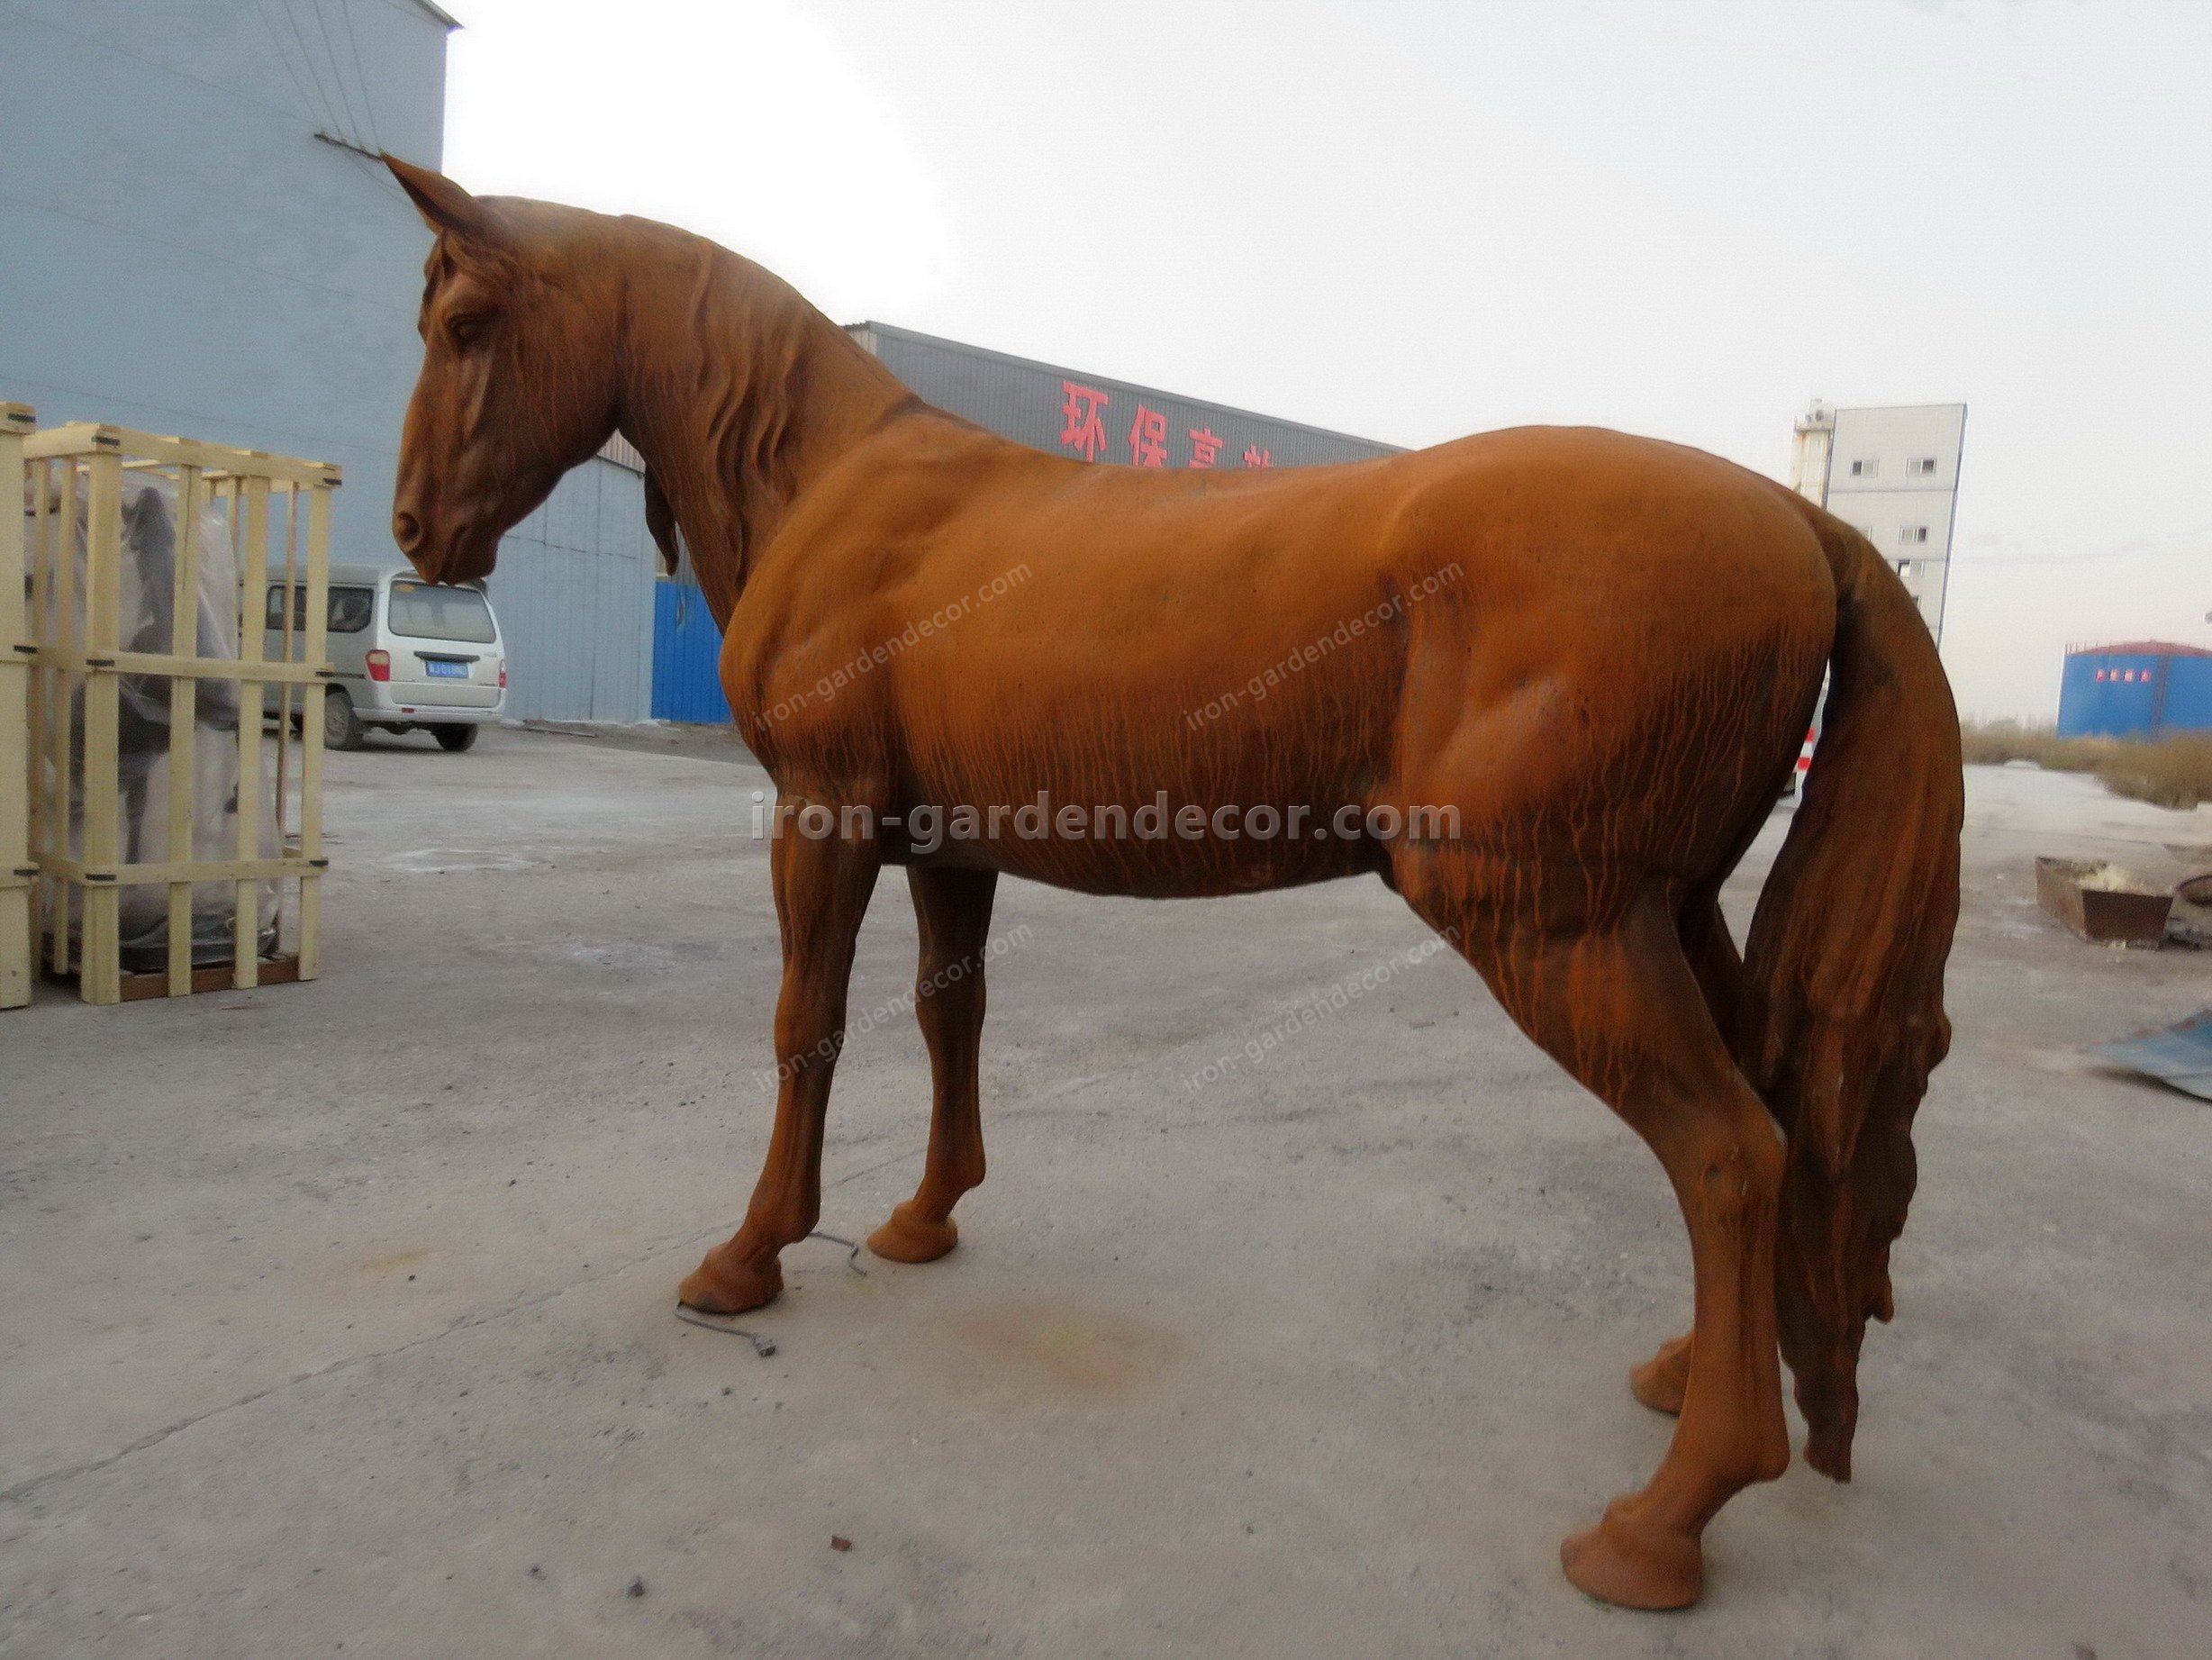 normal size cast iron animal of horse garden animal, large horse animal-SS6027 (8)